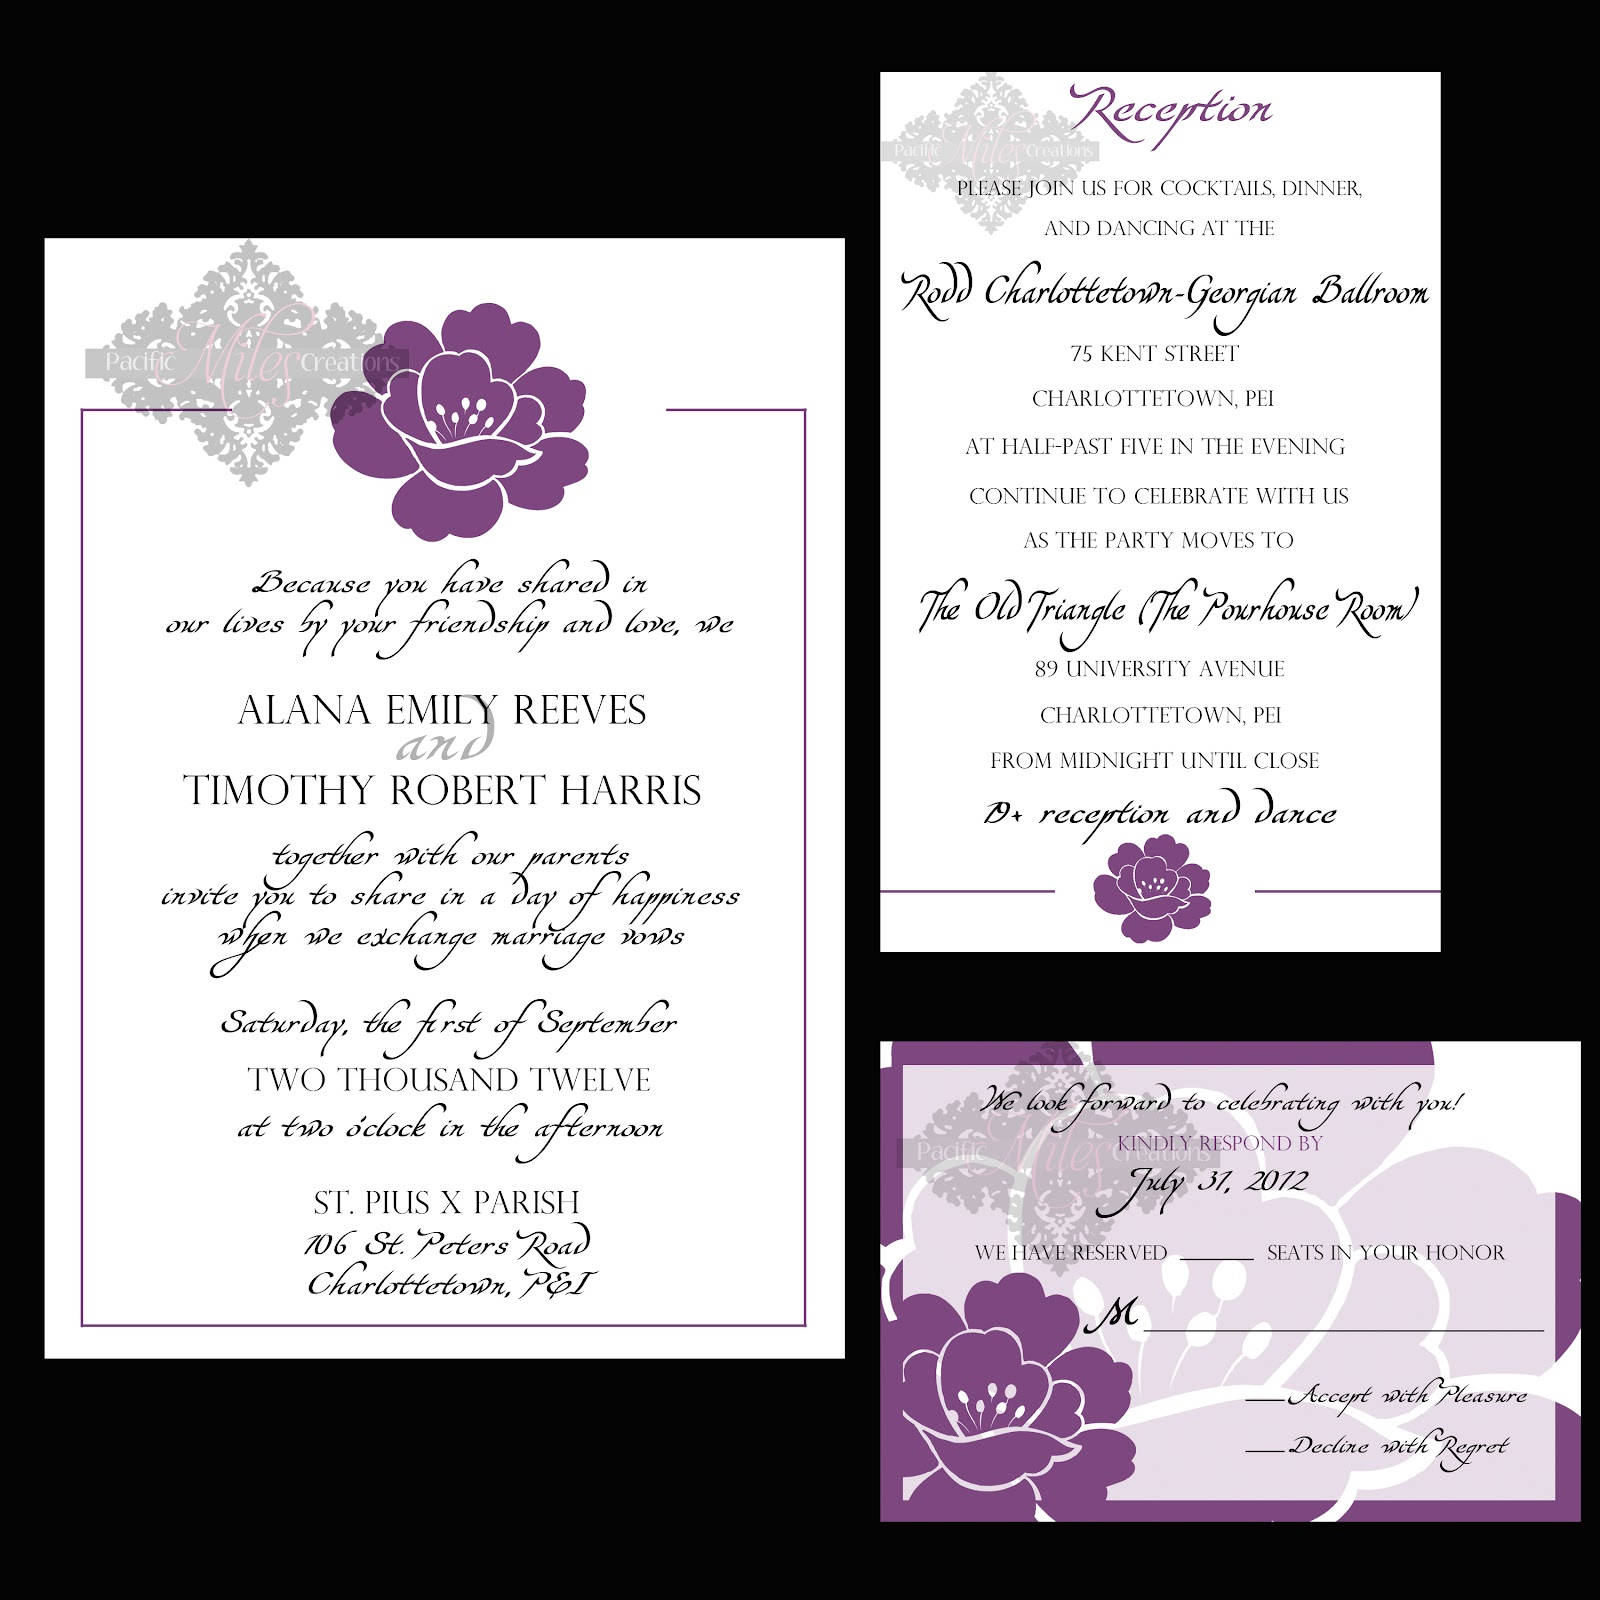 Wedding And Reception Invitations: Wedding Pictures Wedding Photos: Photo Wedding Invitations